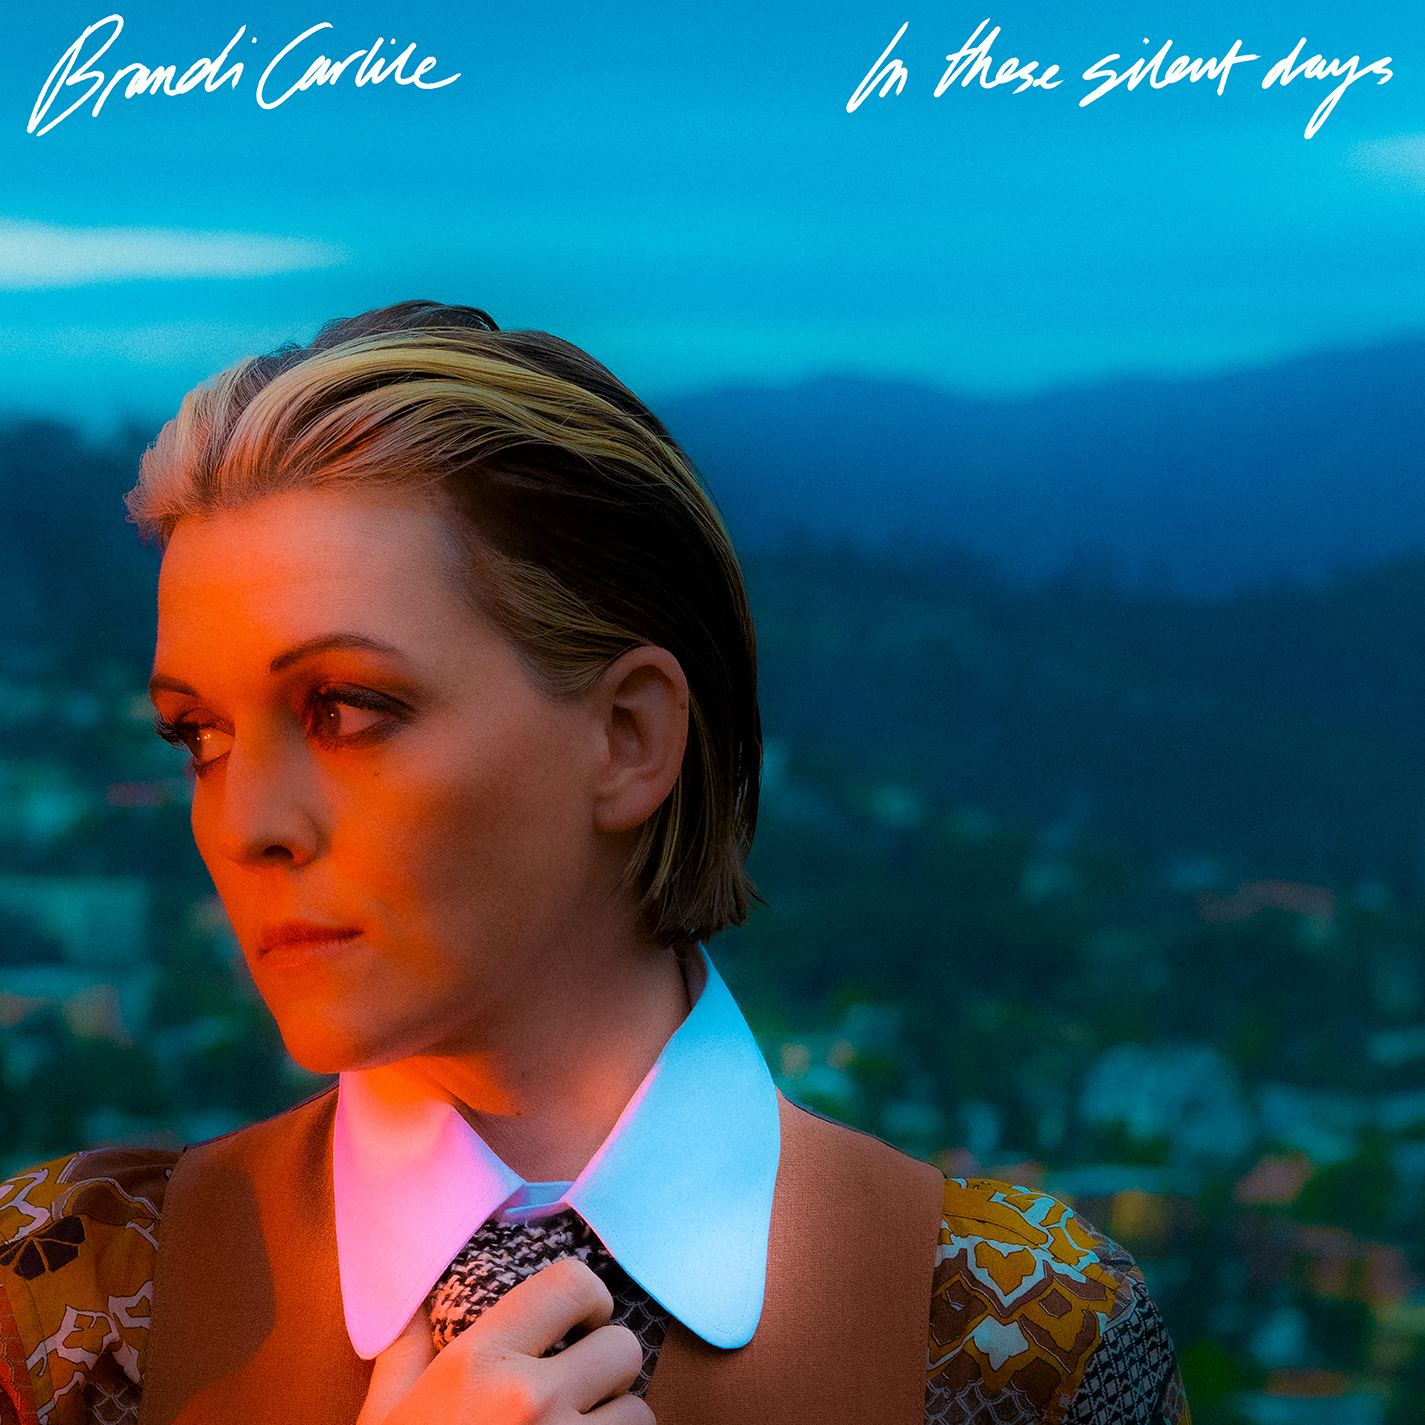 The Story Behind Every Track On Brandi Carlile's New Album In These Silent Days